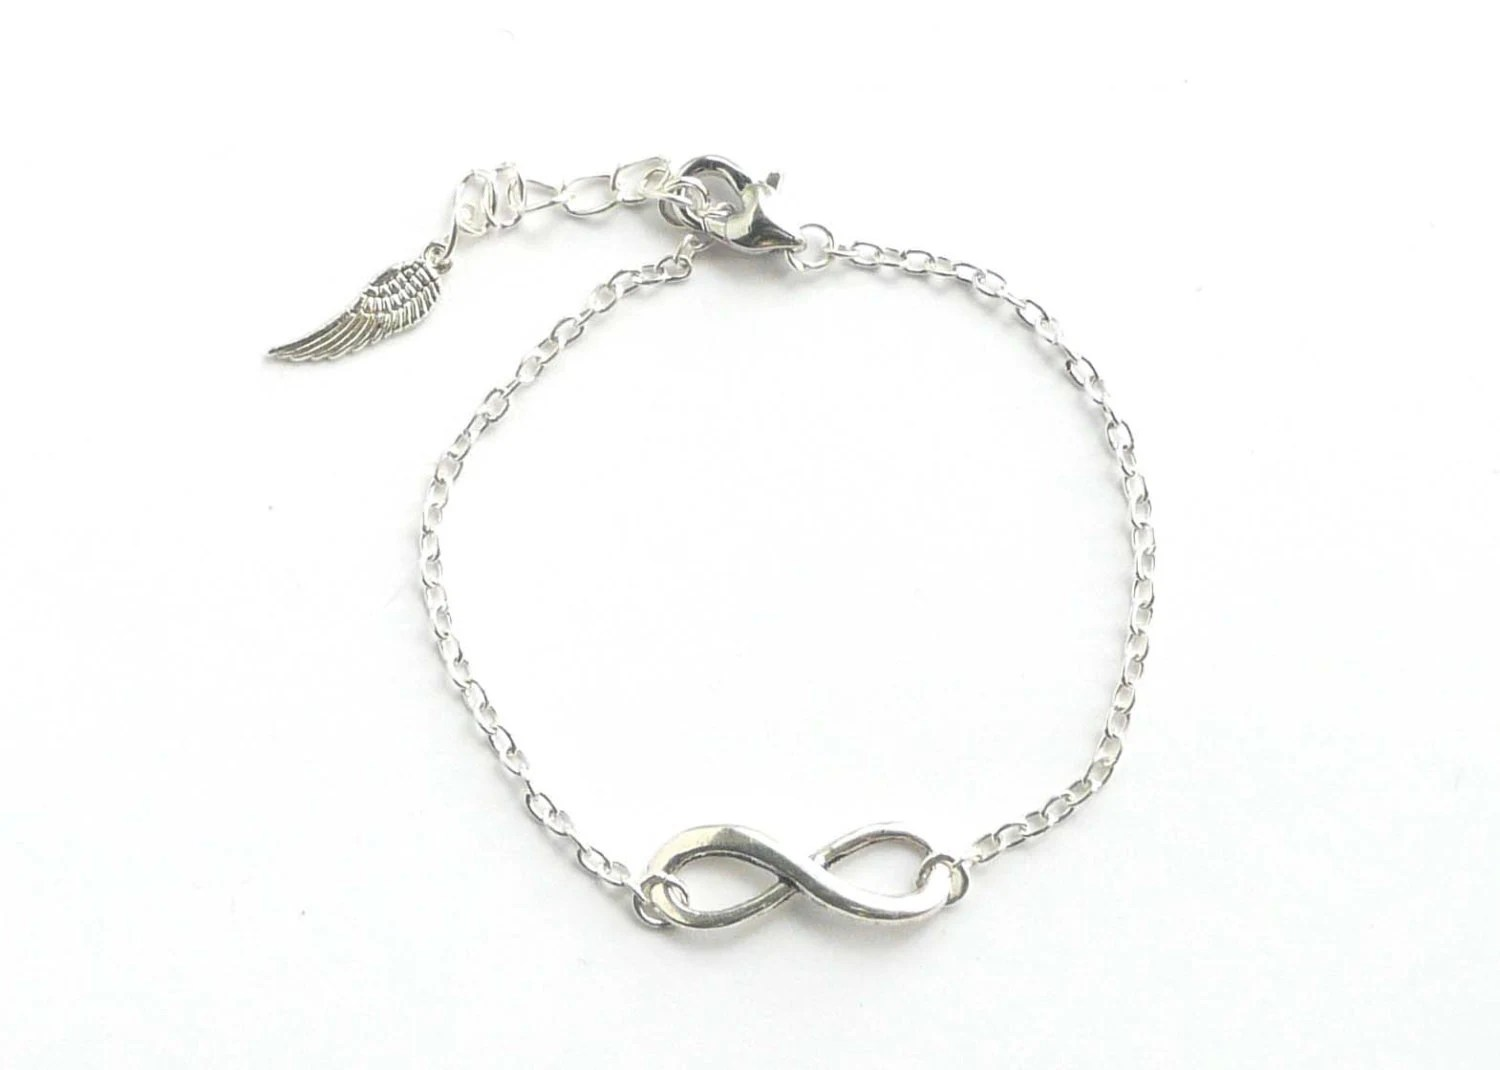 Infinity Bracelet Friendship Bracelet Silver Colored